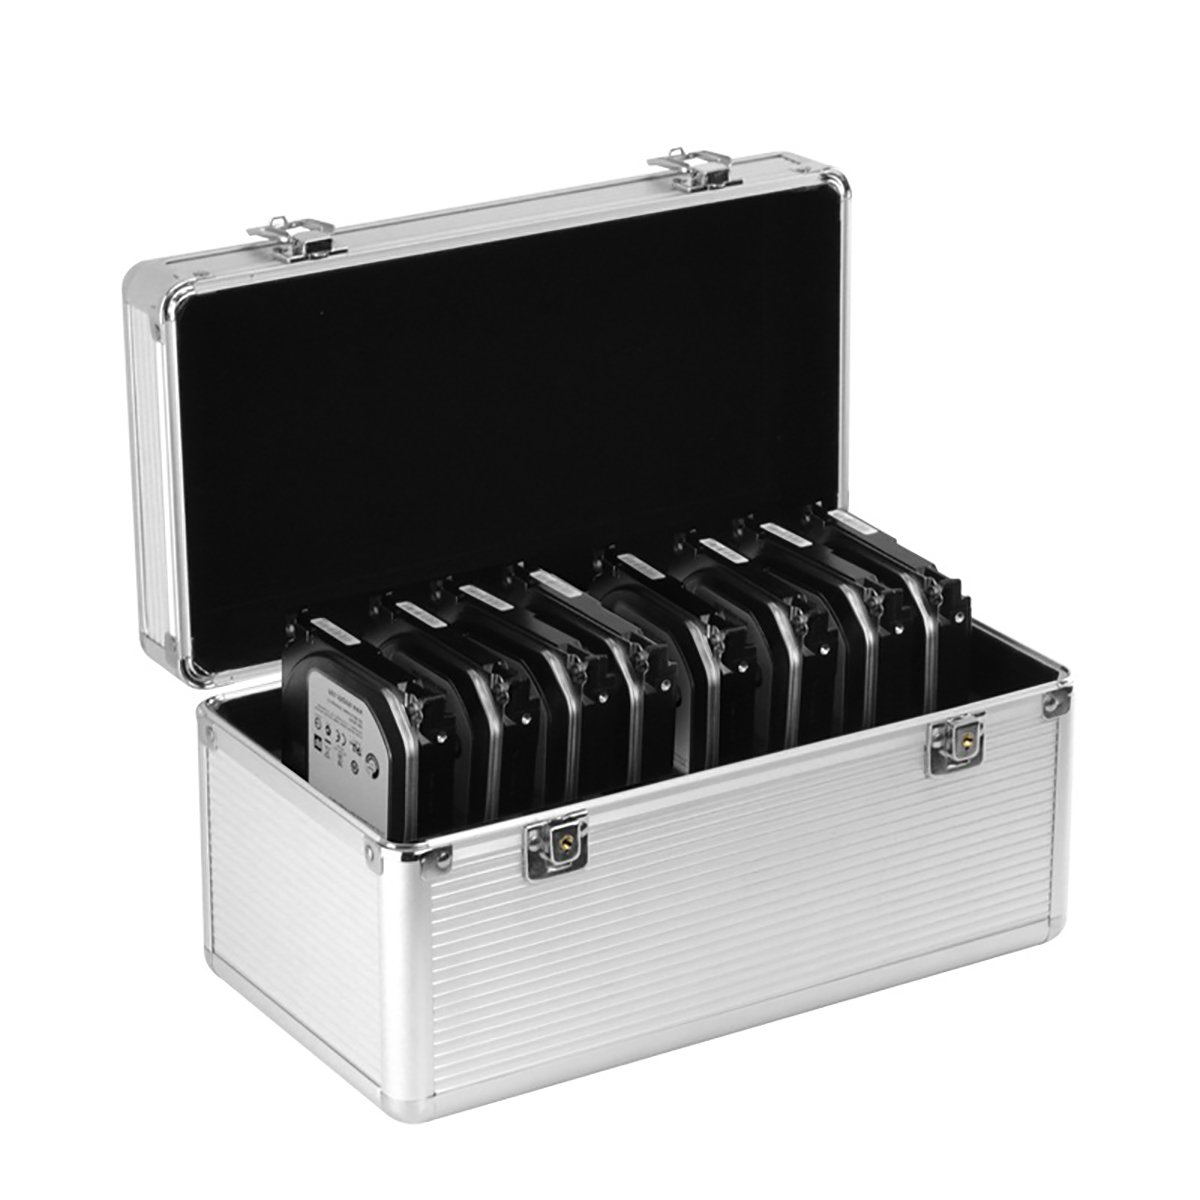 Hard Drive Case Box Suitcase - GLOTRENDS B86 Hard Drive Box with up to 8 Bays for 3.5 inch and 6 Bays for 2.5 inch SATA HDD/SSD Hard Drive Aluminum & EVA Material - Silver